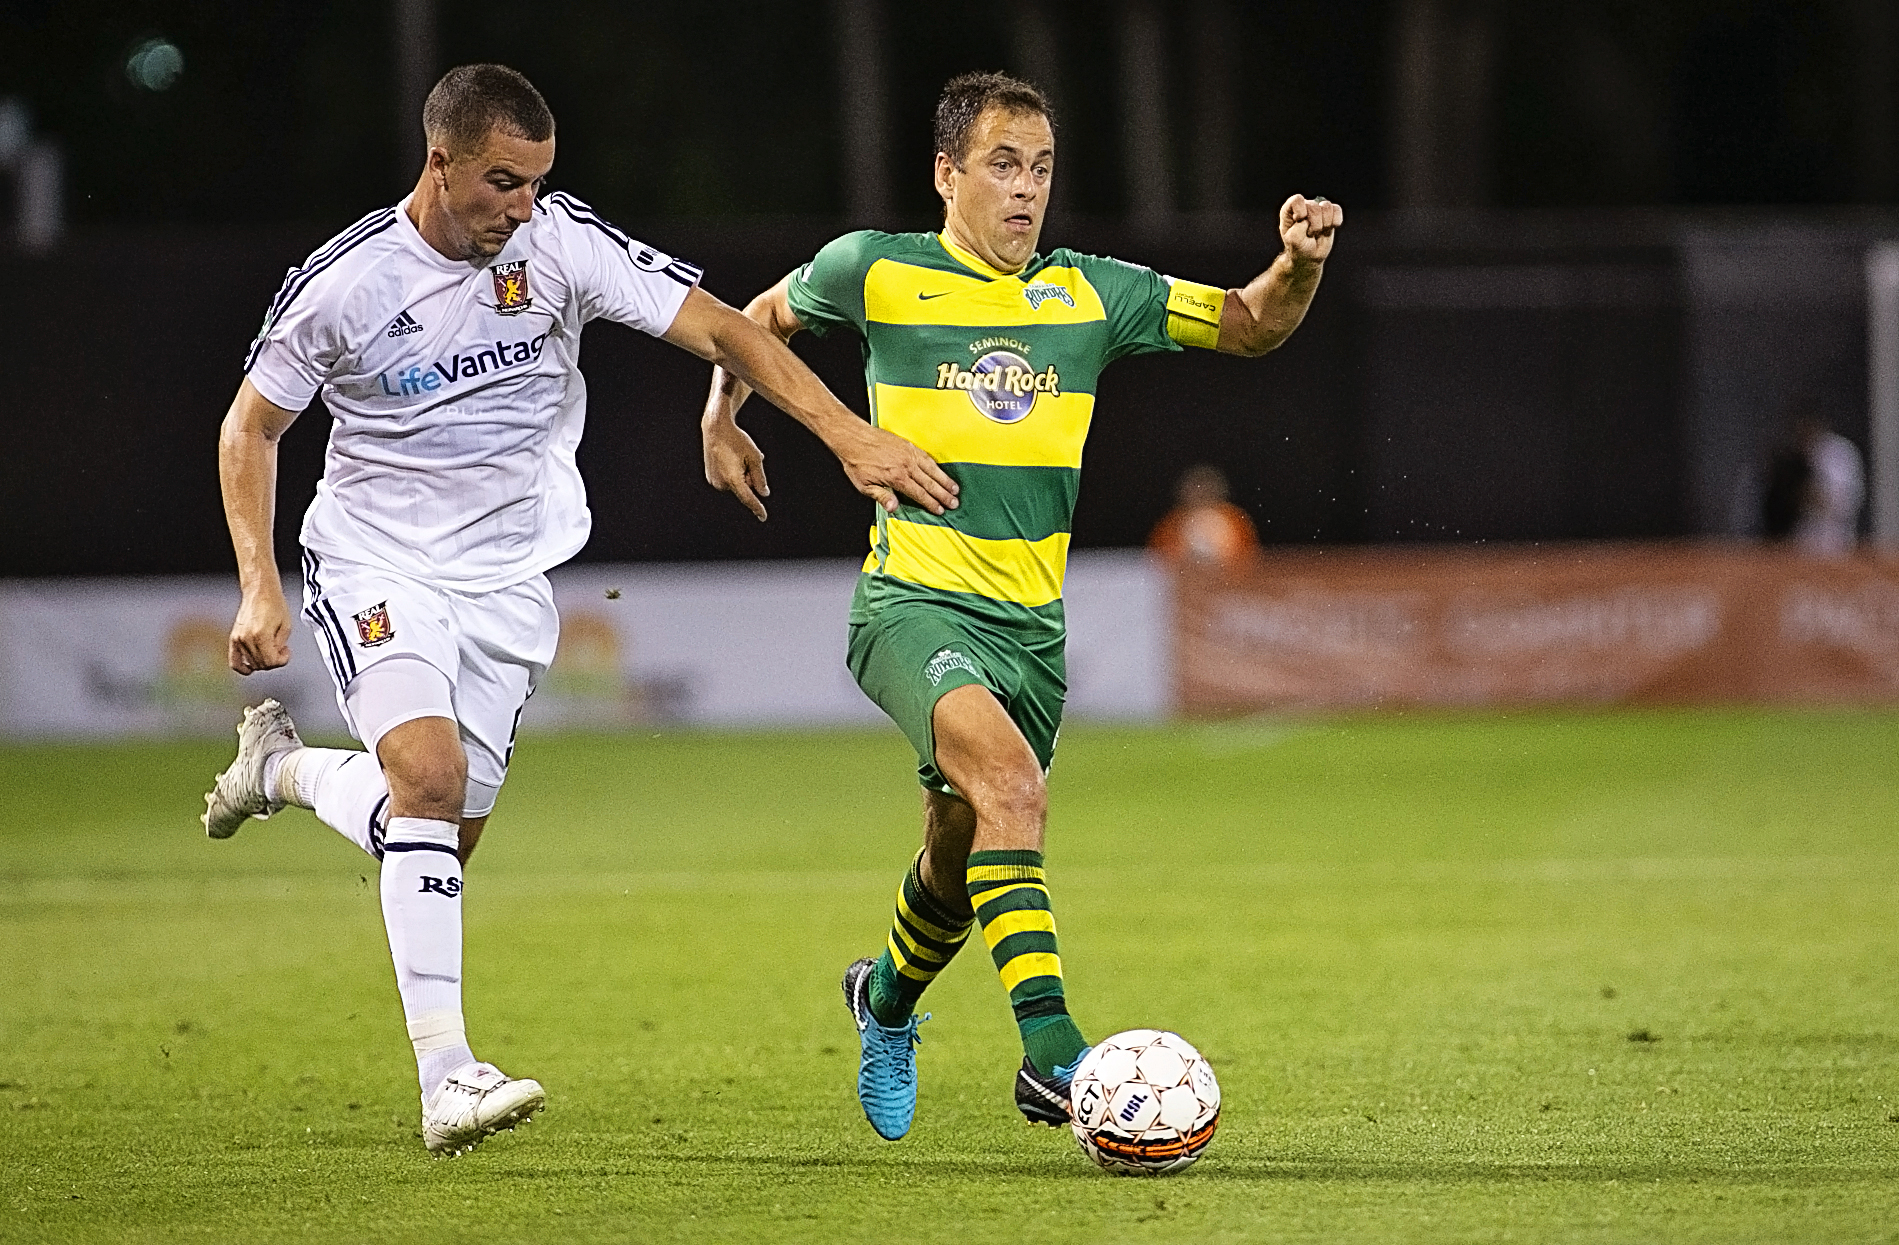 Cole scored a goal for the Rowdies./CARMEN MANDATO